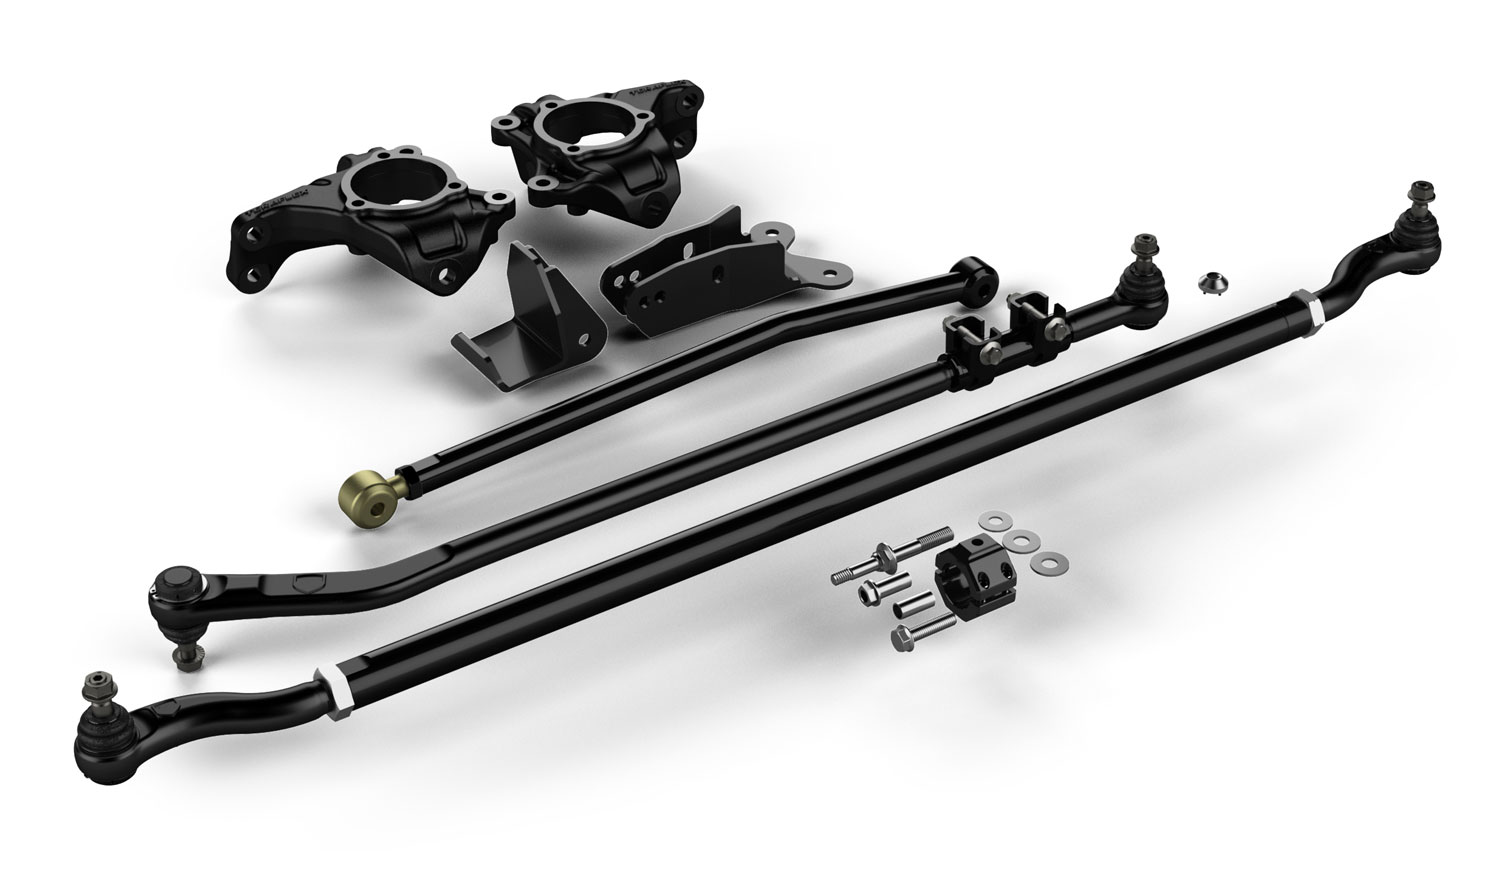 Teraflex Complete High Steer System w/Heavy Duty Tie Rod and Flipped Drag Link - JK